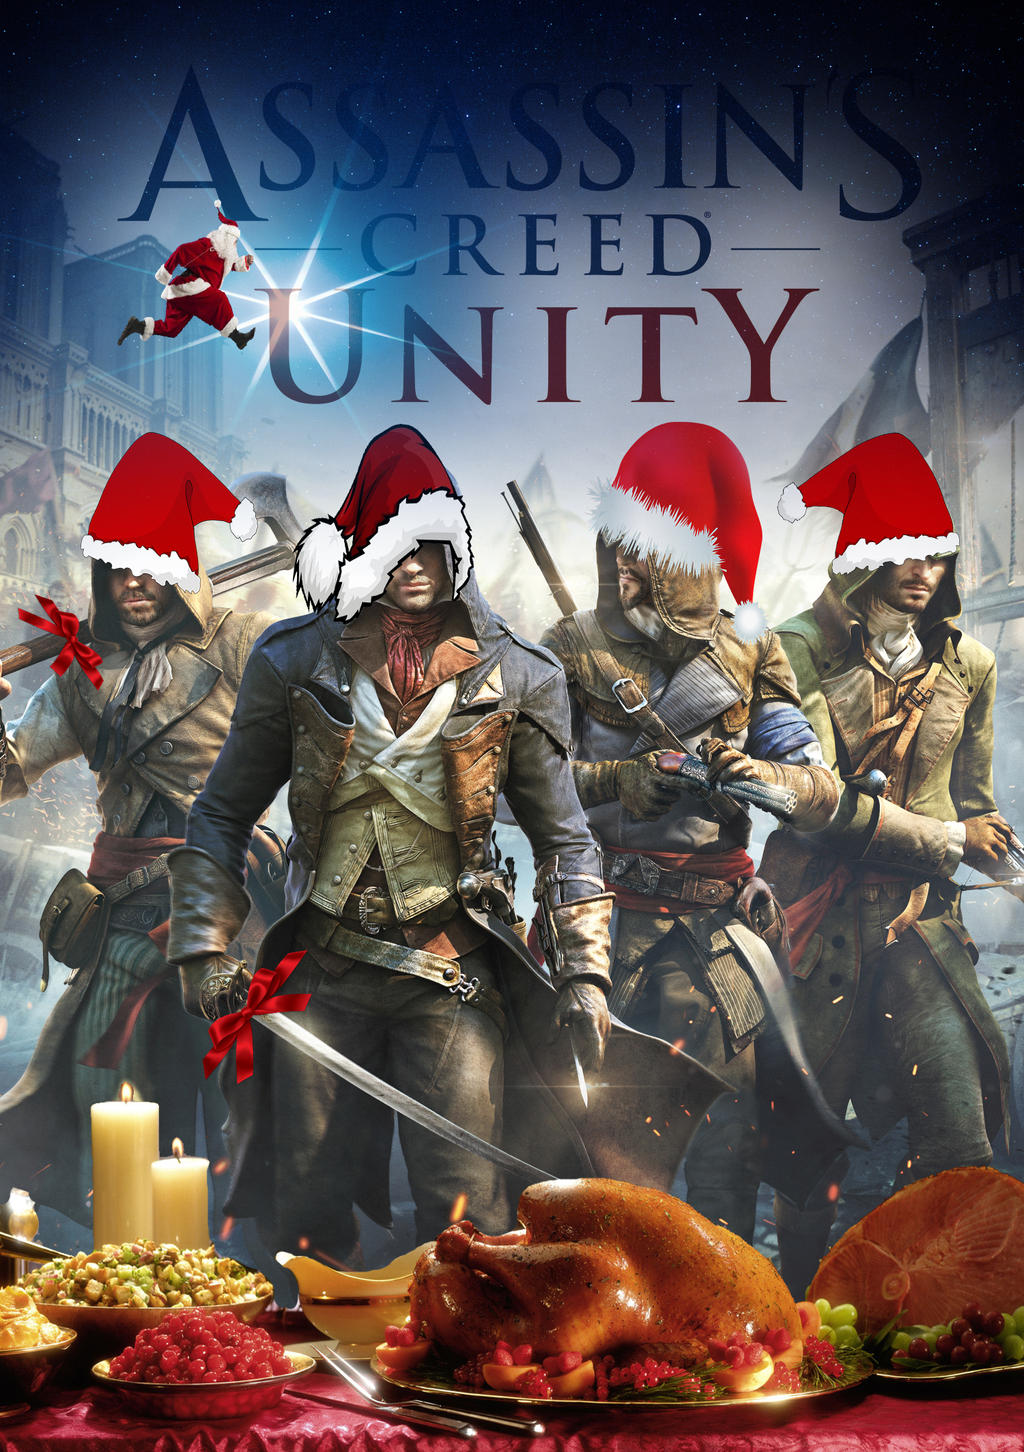 Assassin's Creed Unity christmas by praem on DeviantArt